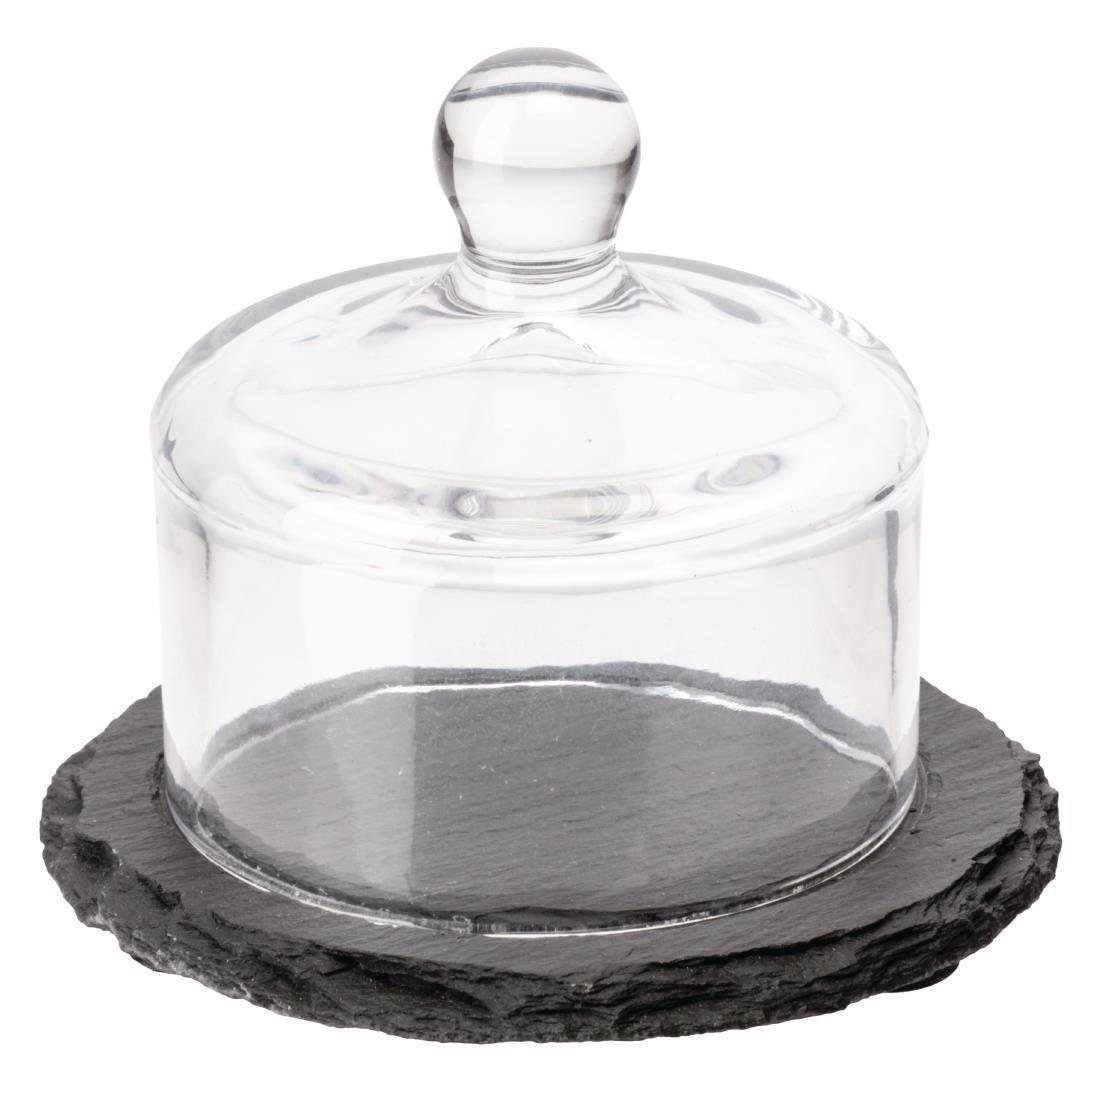 APS Slate Butter Dish Glass Cloche - Each - GH408